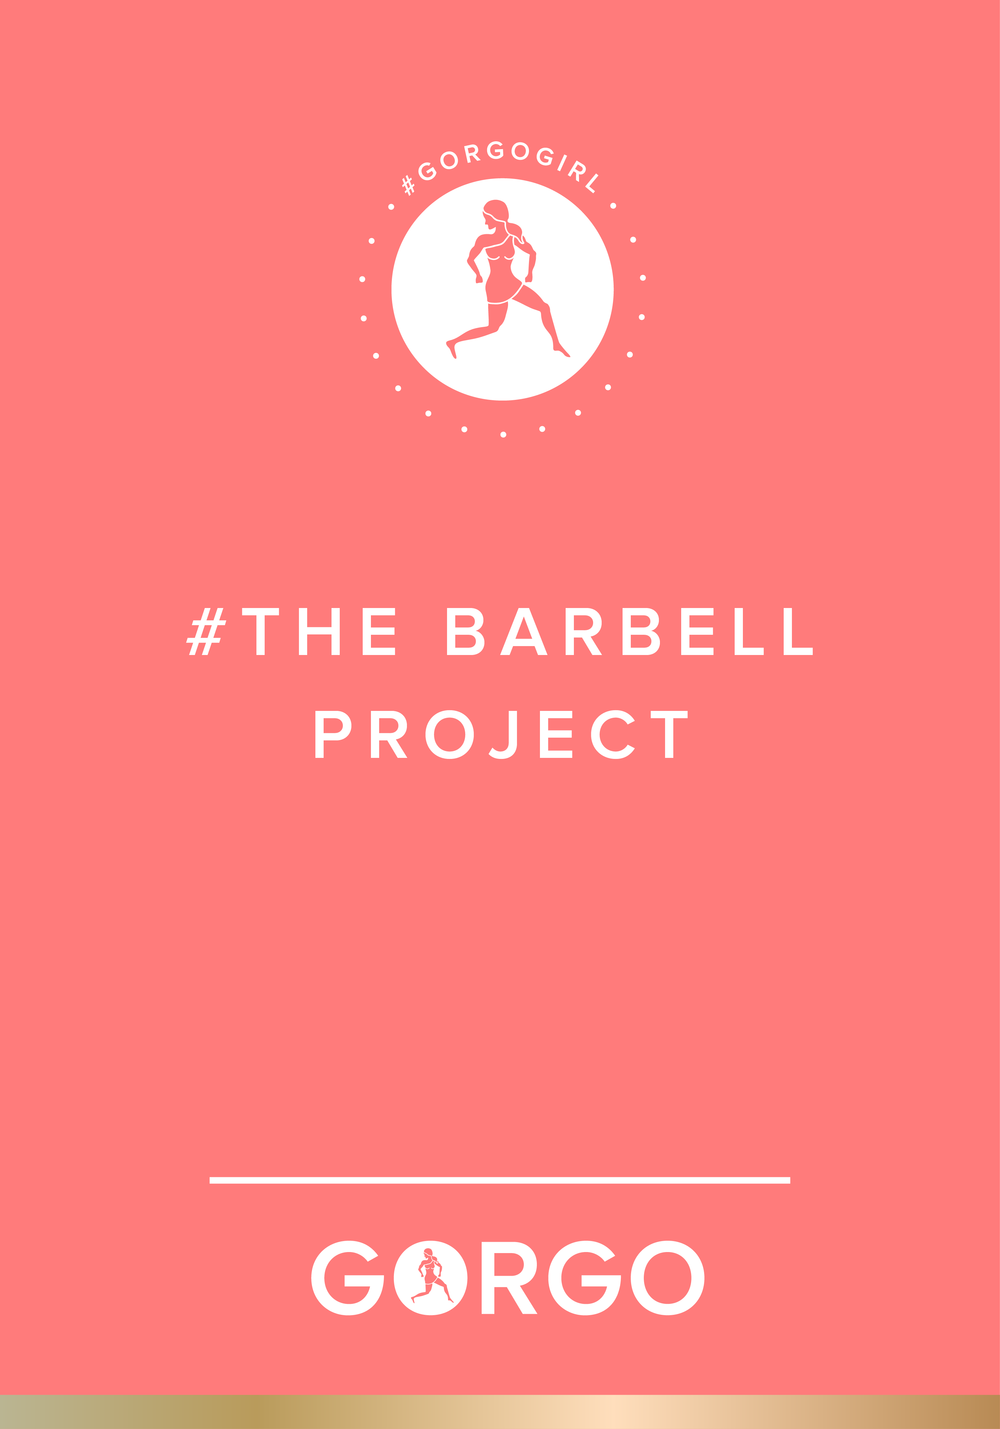 The Barbell Project #gorgogirl